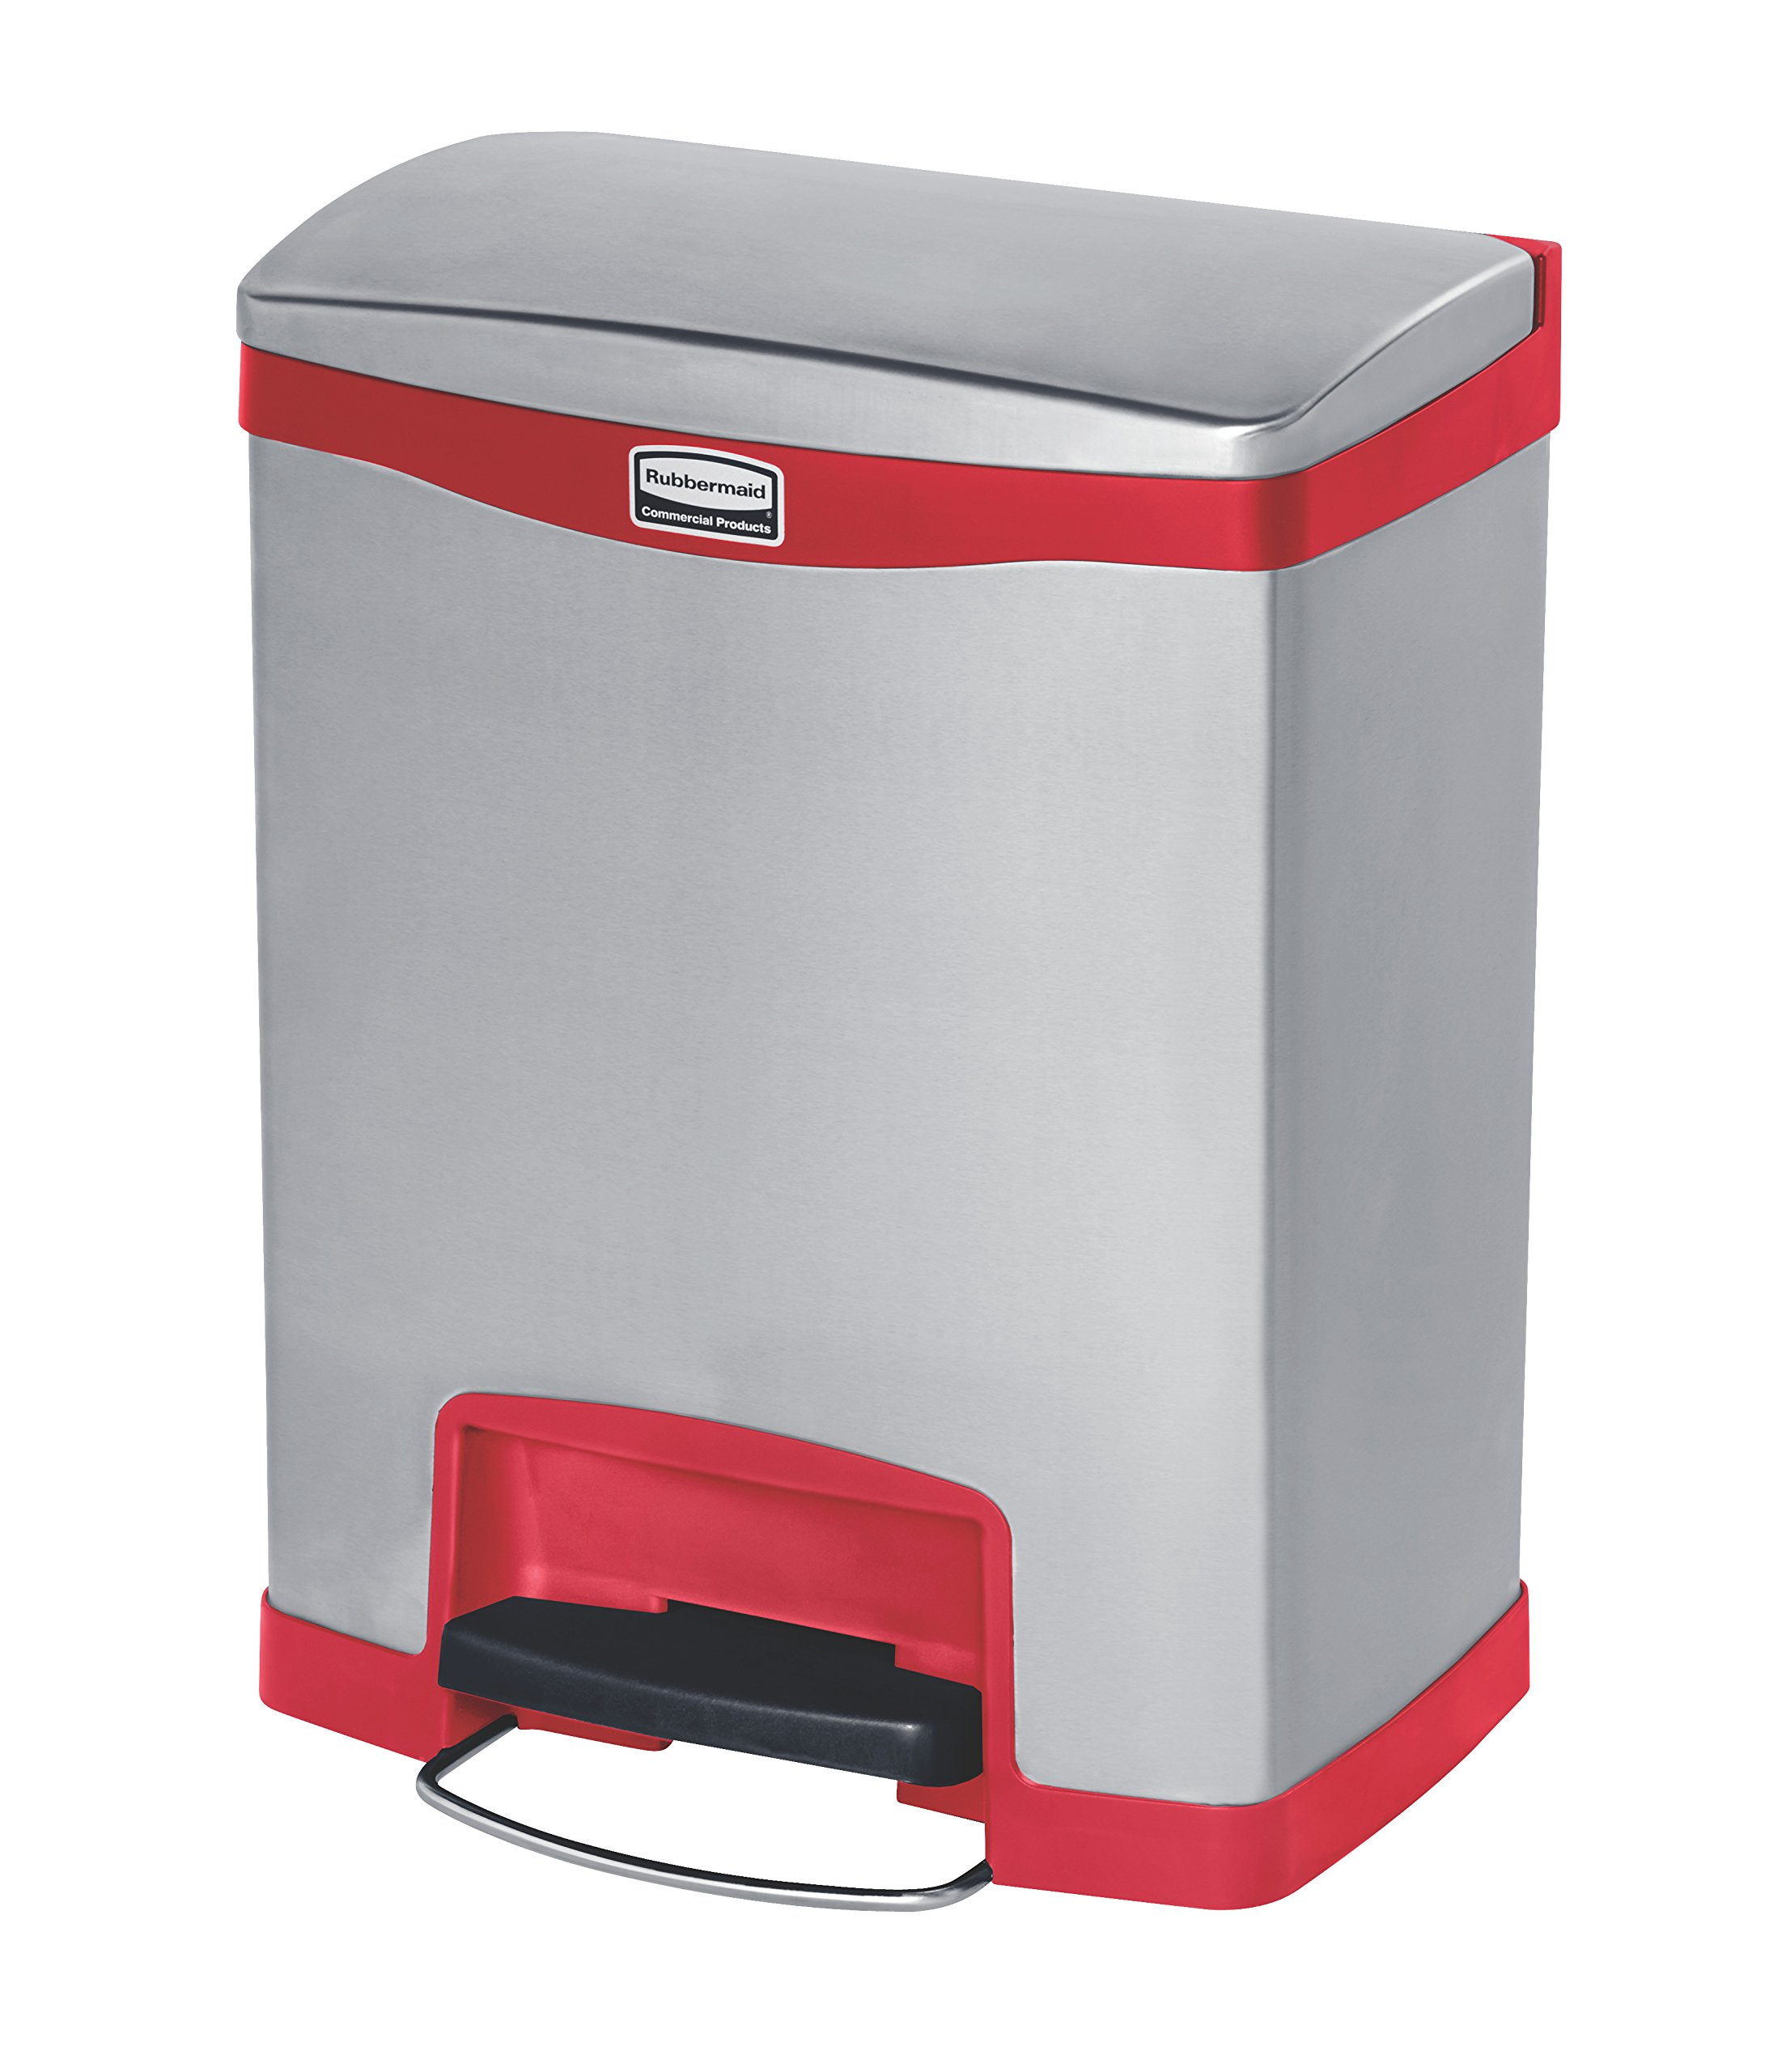 Rubbermaid Commercial Slim Jim Stainless Steel Front Step-On Wastebasket, 8-gallon, Red (1901988)